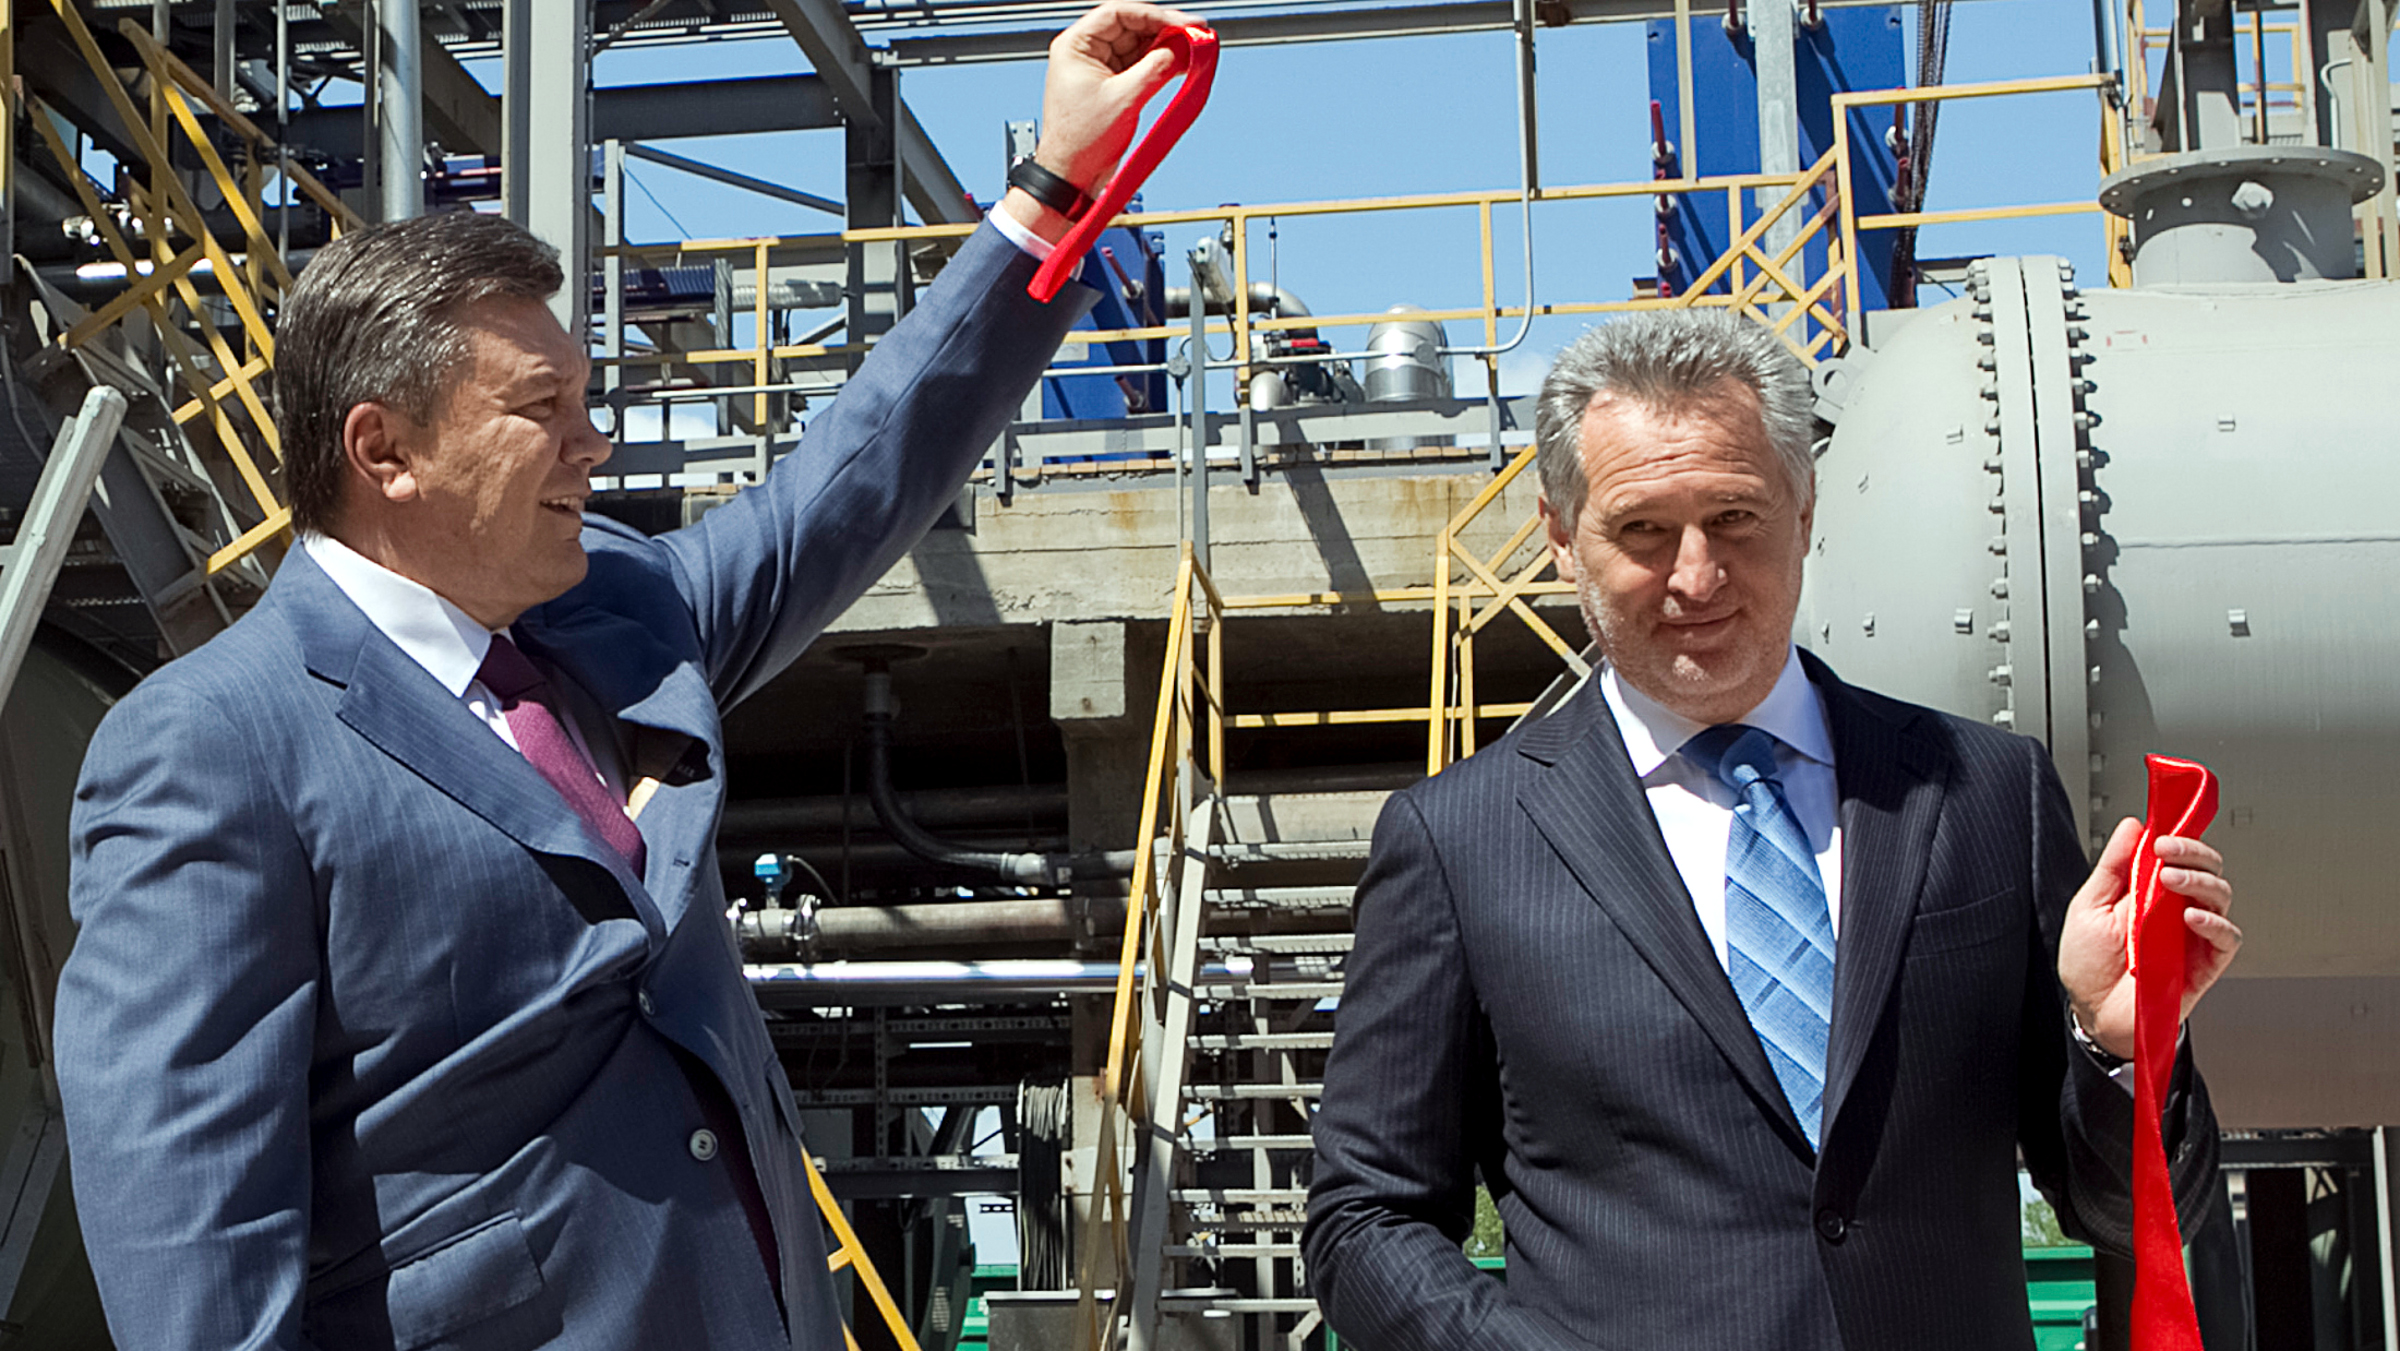 Dmytro Firtash, one of Ukraine's richest men, (R) and Ukrainian President Viktor Yanukovich take part in an opening ceremony of a new complex for the production of sulfuric acid in Crimea region April 27, 2012. Austria has arrested Ukrainian businessman Firtash at the request of the United States which has been investigating him since 2006, government sources said. The Federal Crime Agency on March 13, 2014 identified the suspect only as Dmitry F., 48, but government sources said it was Firtash. The agency said he was suspected of violating laws on bribery and forming a criminal organisation in the course of foreign business deals. Picture taken April 27, 2012.